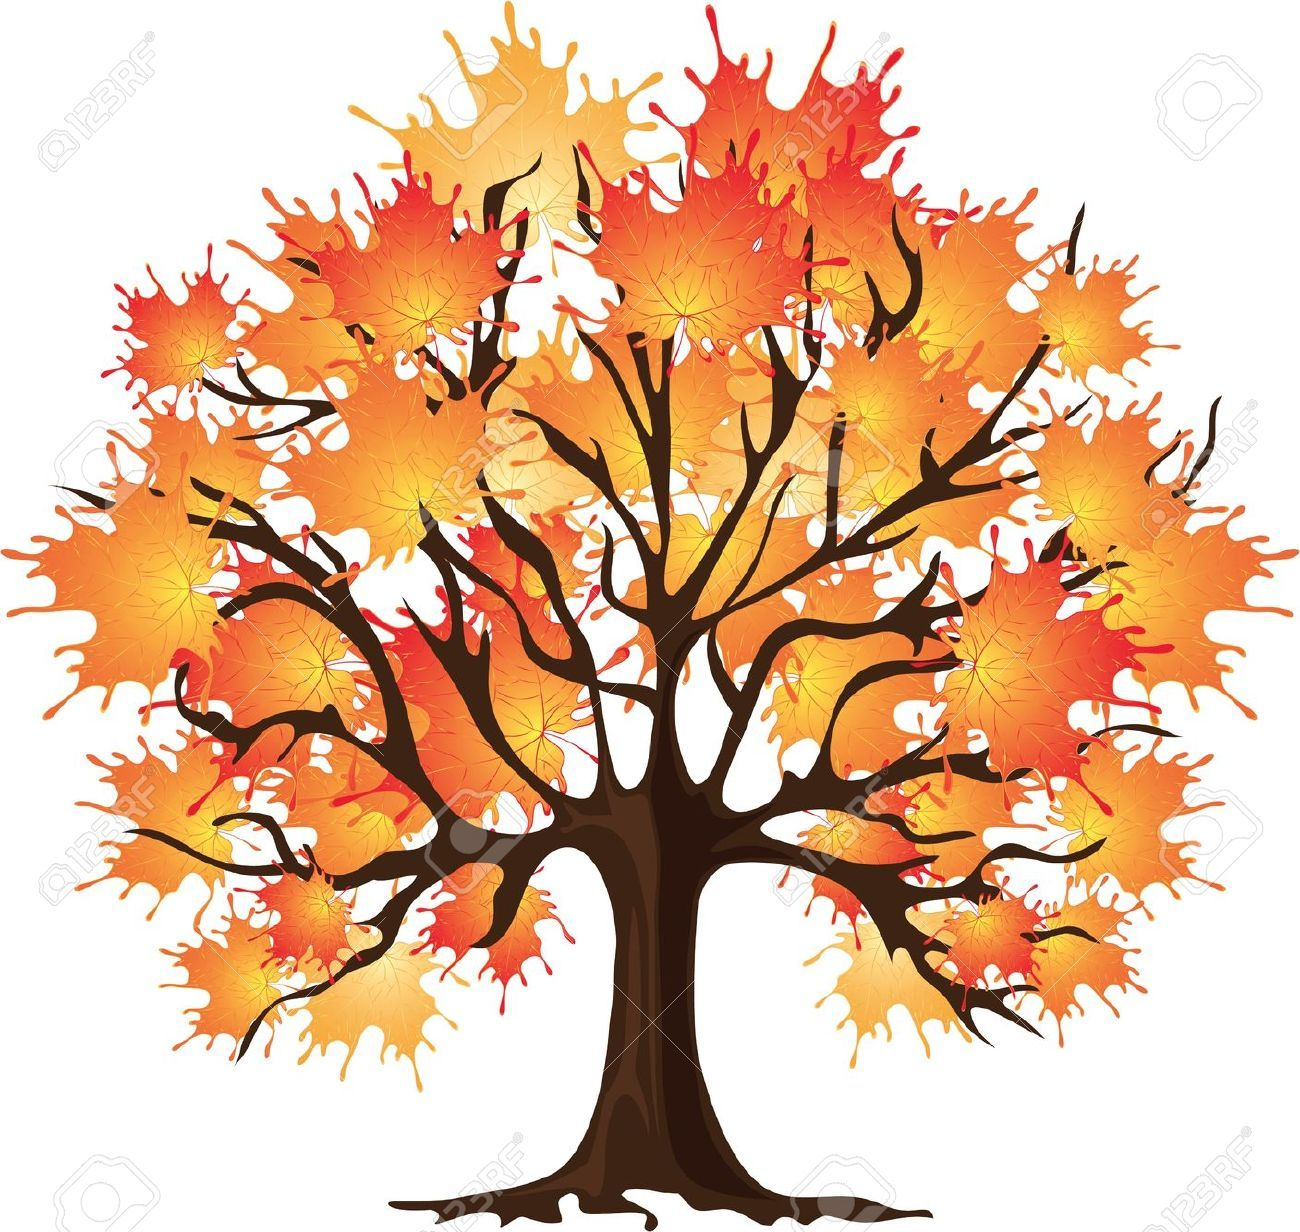 realistic fall tree drawing google search tree. Black Bedroom Furniture Sets. Home Design Ideas